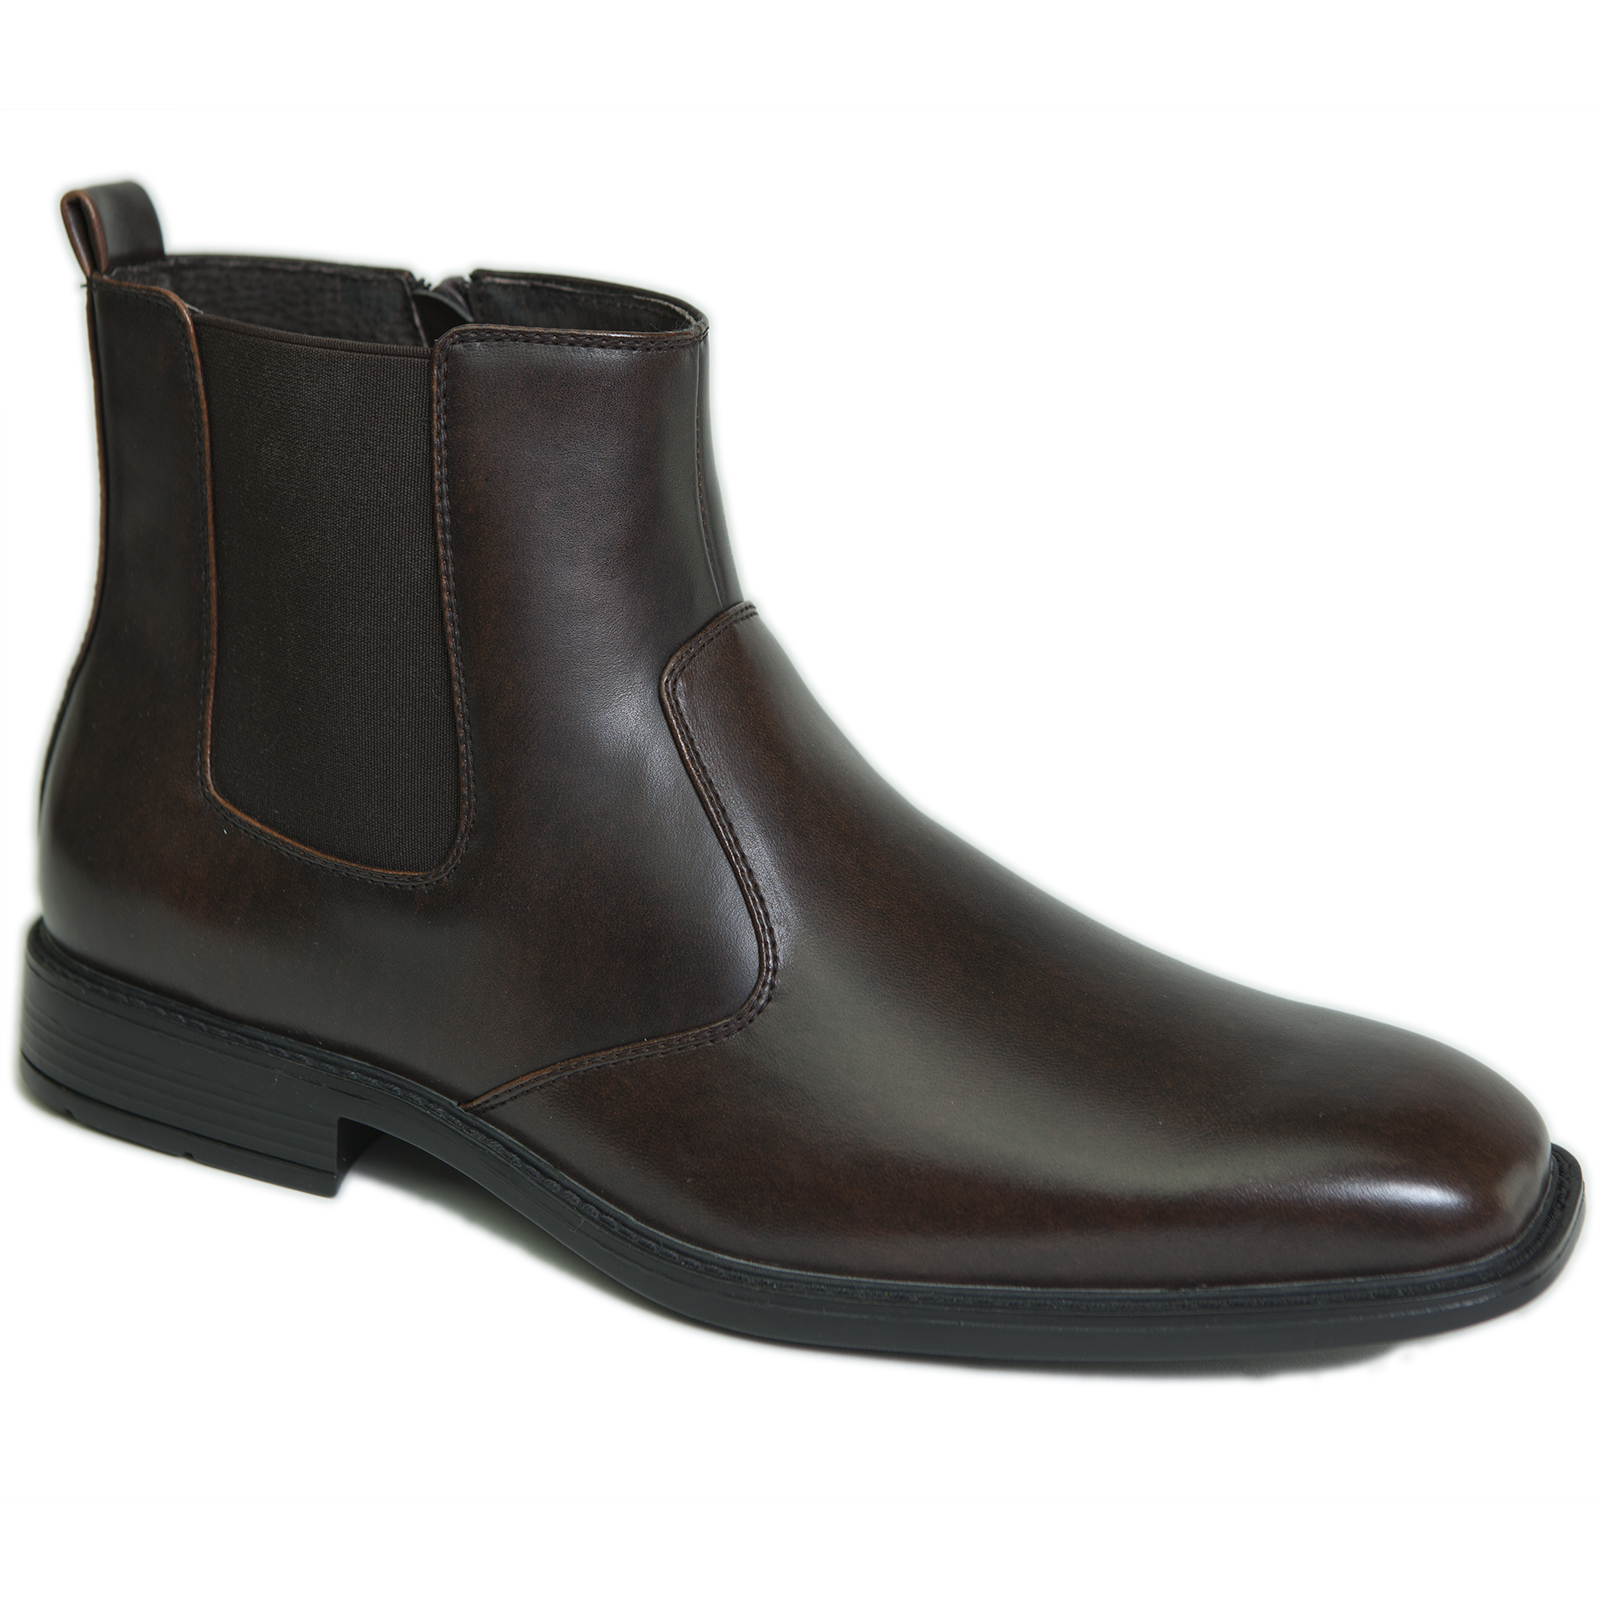 alpine swiss nyon men 39 s chelsea boots dress ankle slip on shoes zipper pull up ebay. Black Bedroom Furniture Sets. Home Design Ideas